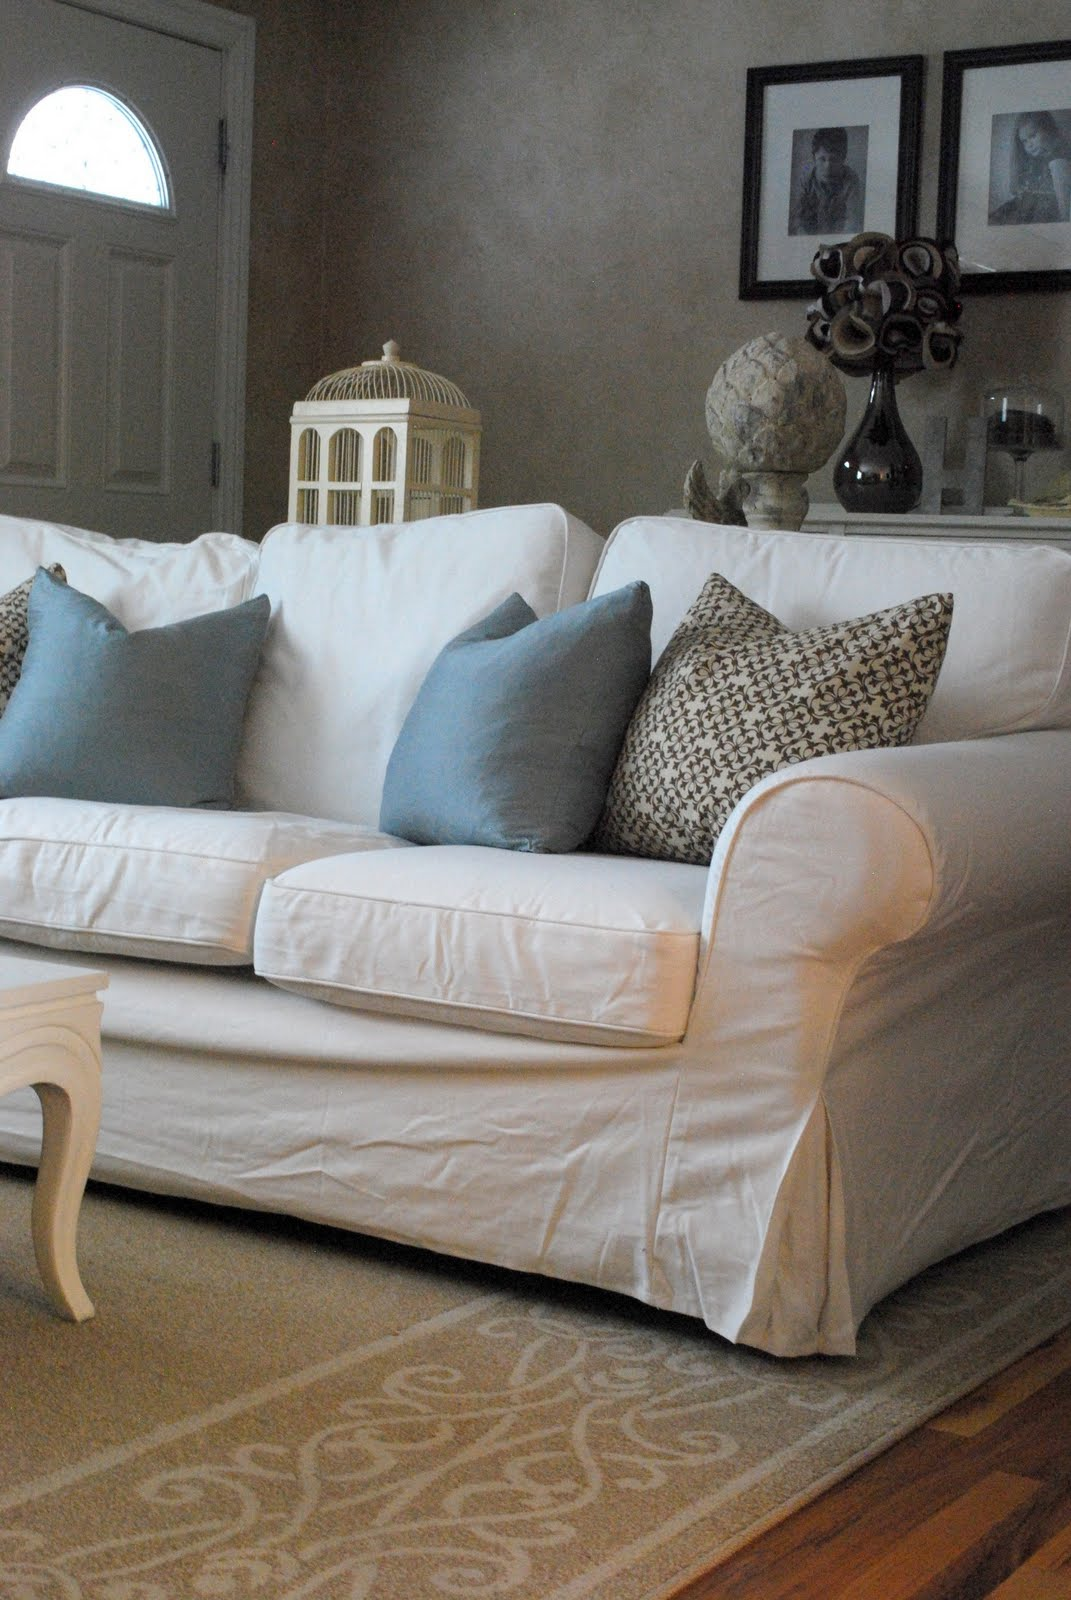 sofa and chairs silver crushed velvet bedroom chair comfortable white slipcovered that brings